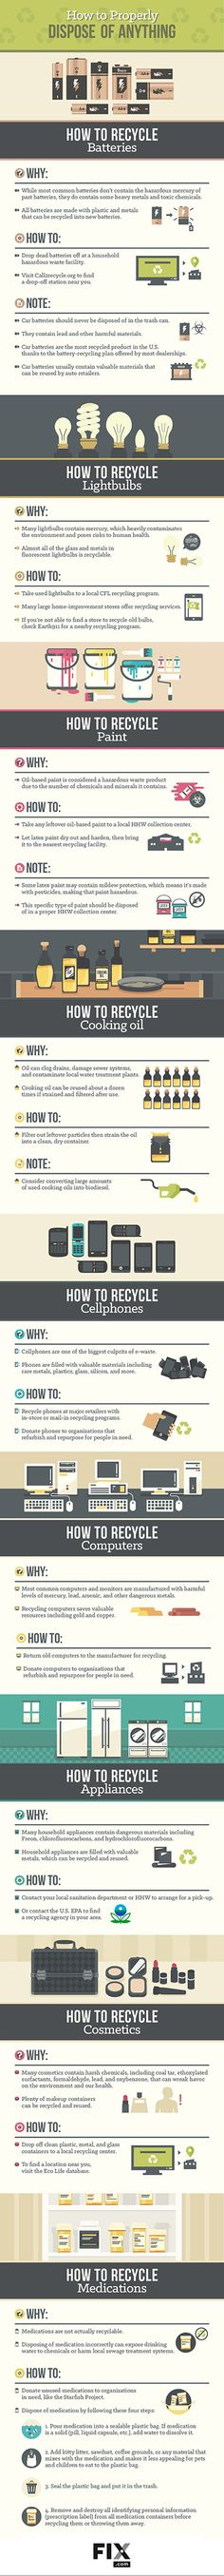 Out with the old and in with the new for 2016? Be sure you're recycling items properly. Here are some helpful tips for batteries, electronics, cooking oil and more.